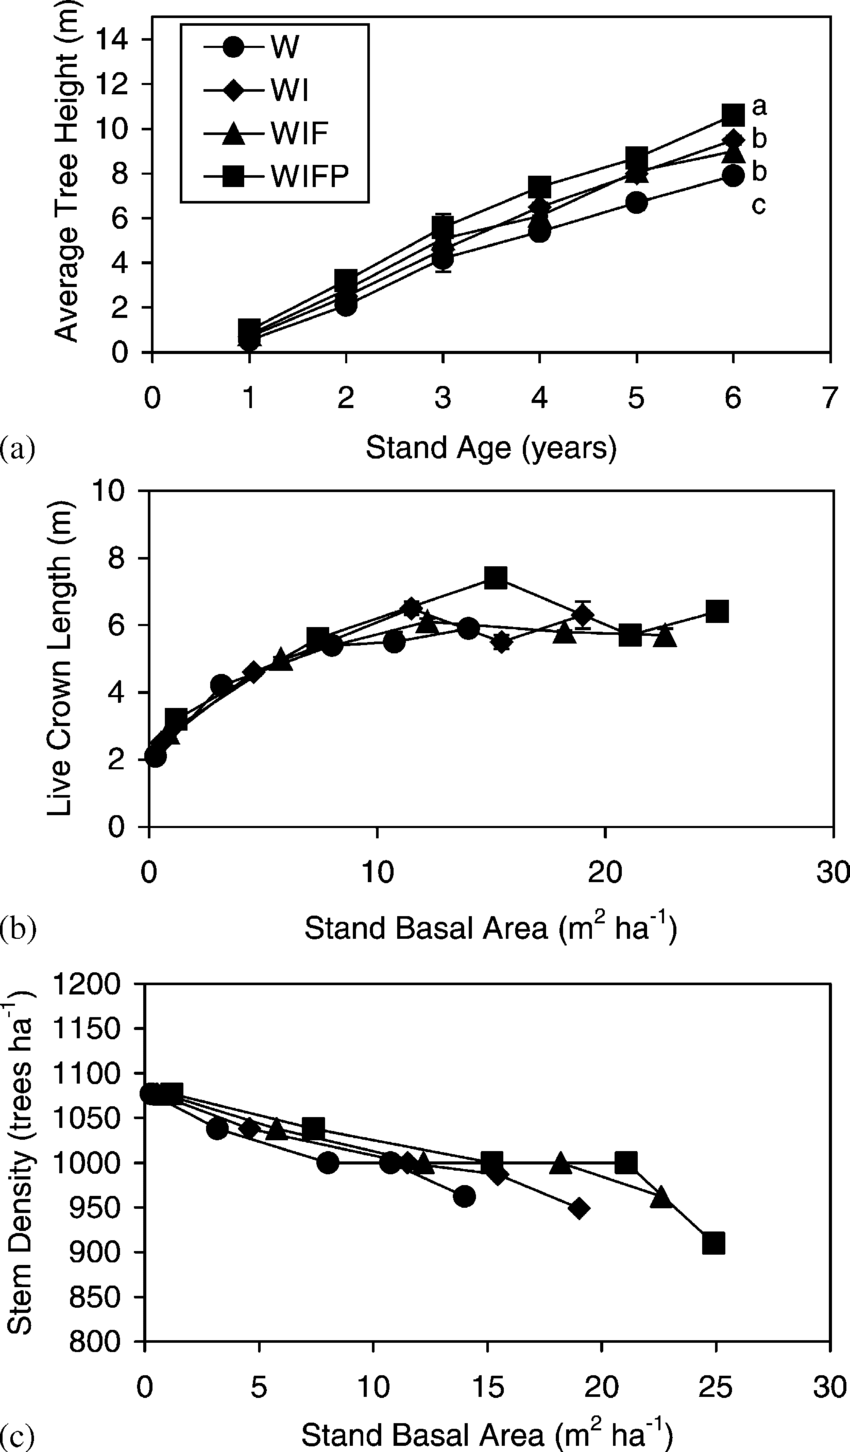 medium resolution of average tree height in relation to stand age a and live crown length b and stem density c in relation to stand basal area of loblolly pine in